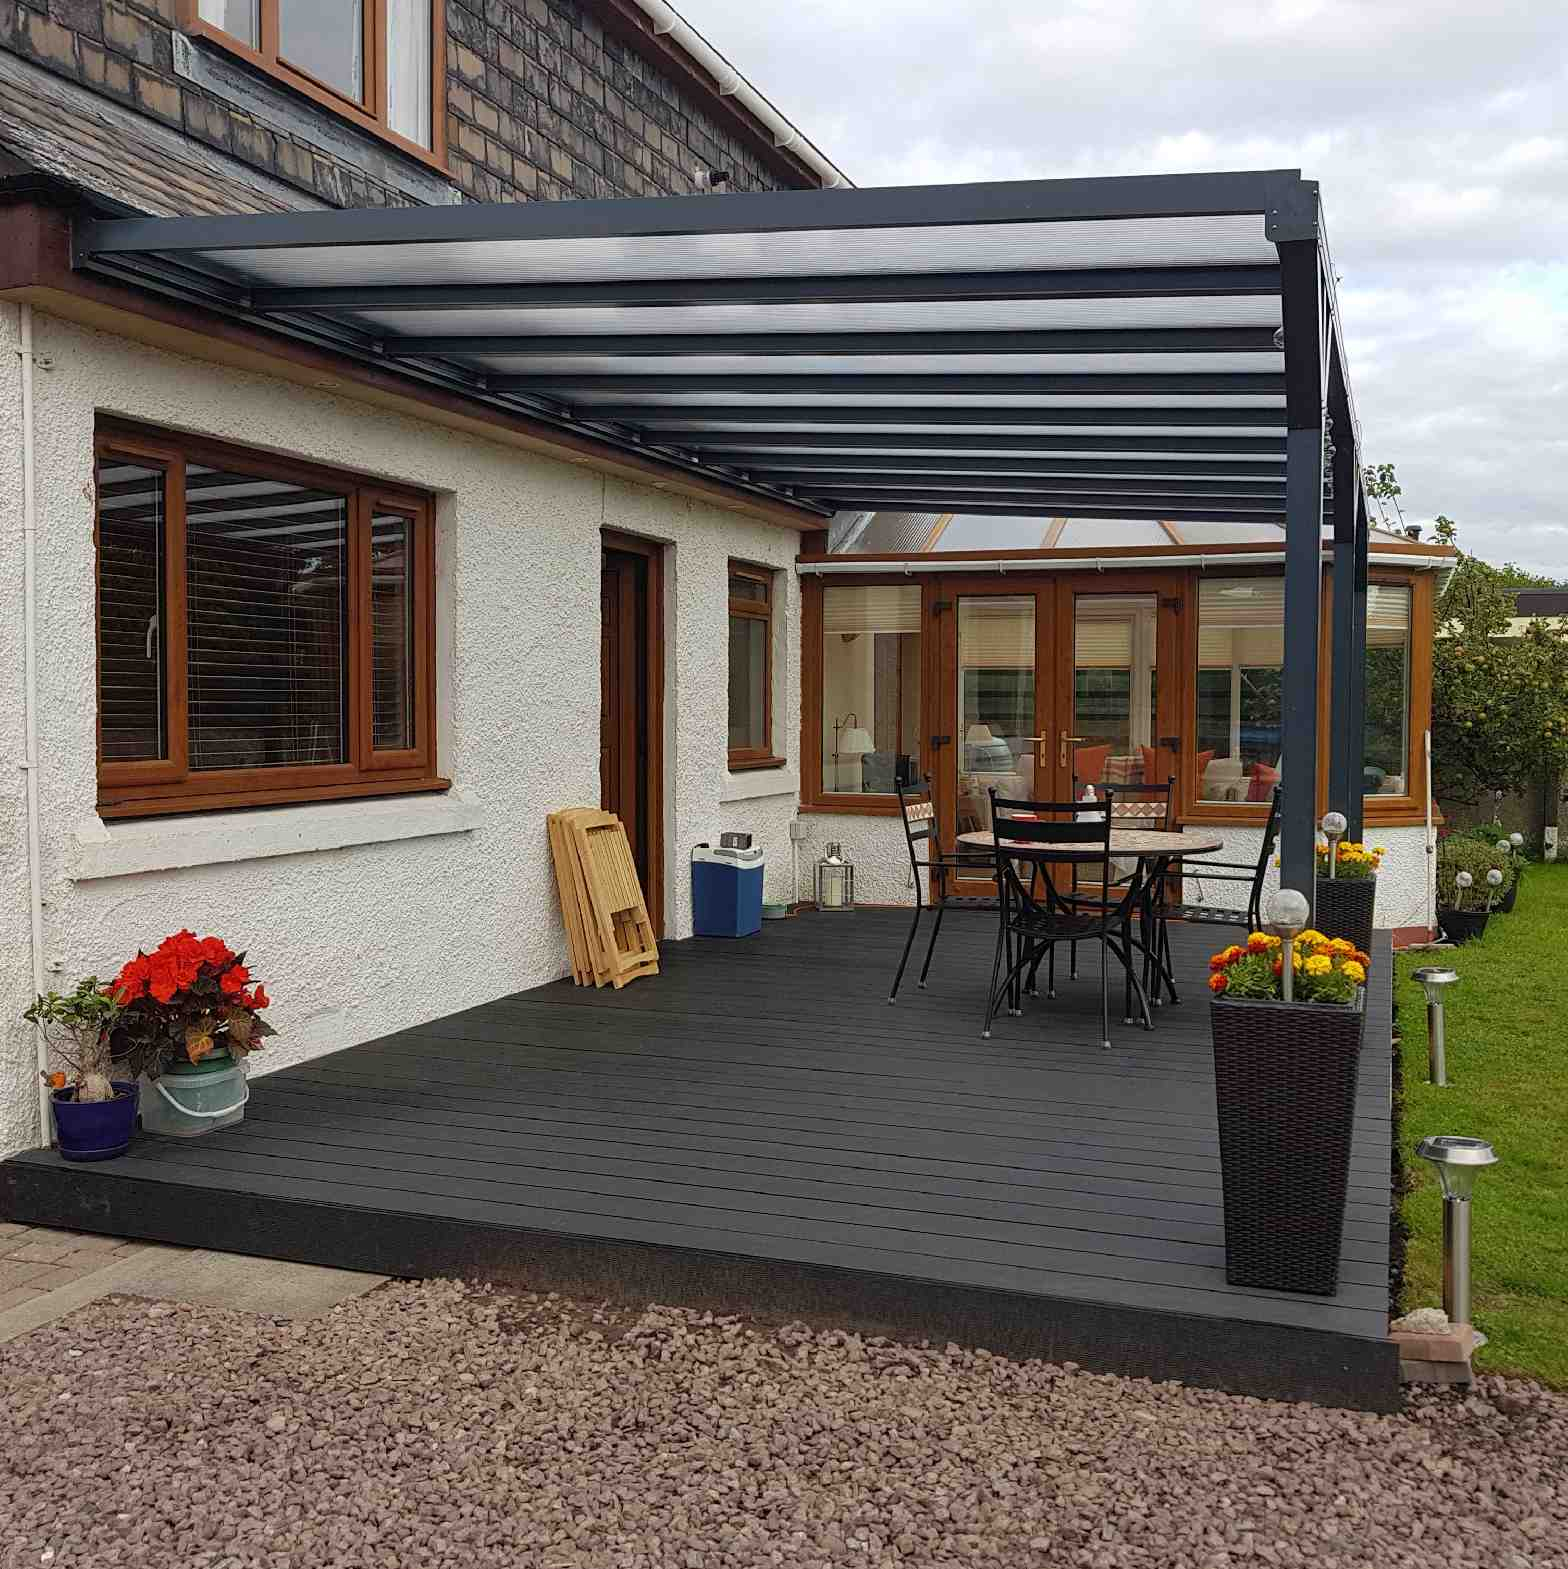 Buy Omega Verandah, Anthracite Grey, 16mm Polycarbonate Glazing - 2.1m (W) x 3.5m (P), (2) Supporting Posts online today